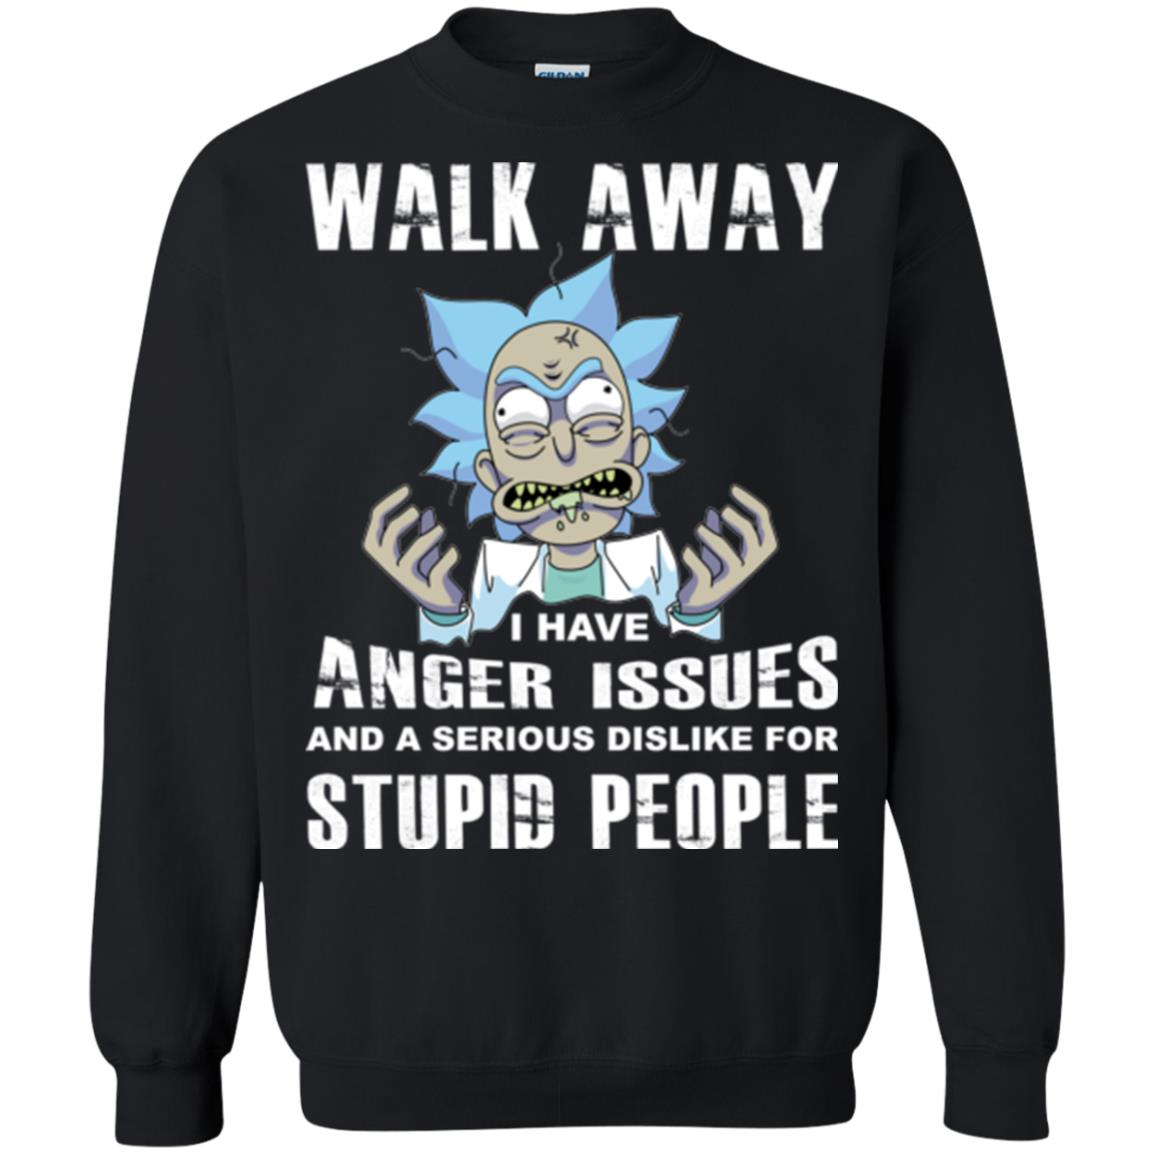 image 244px Rick and Morty: Walk away I have anger issues for stupid people t shirt